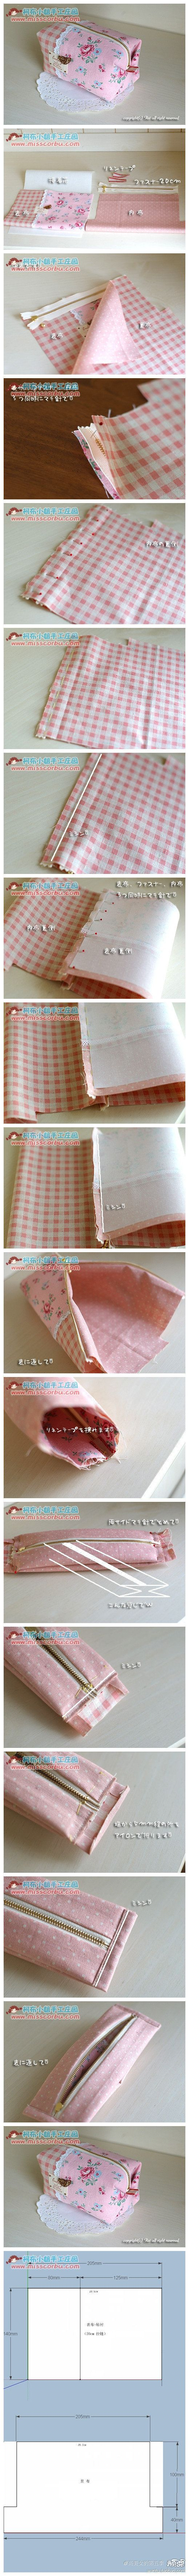 Cute little boxed corners  pouch picture tutorial. Nice way to neaten/hide the seams inside.